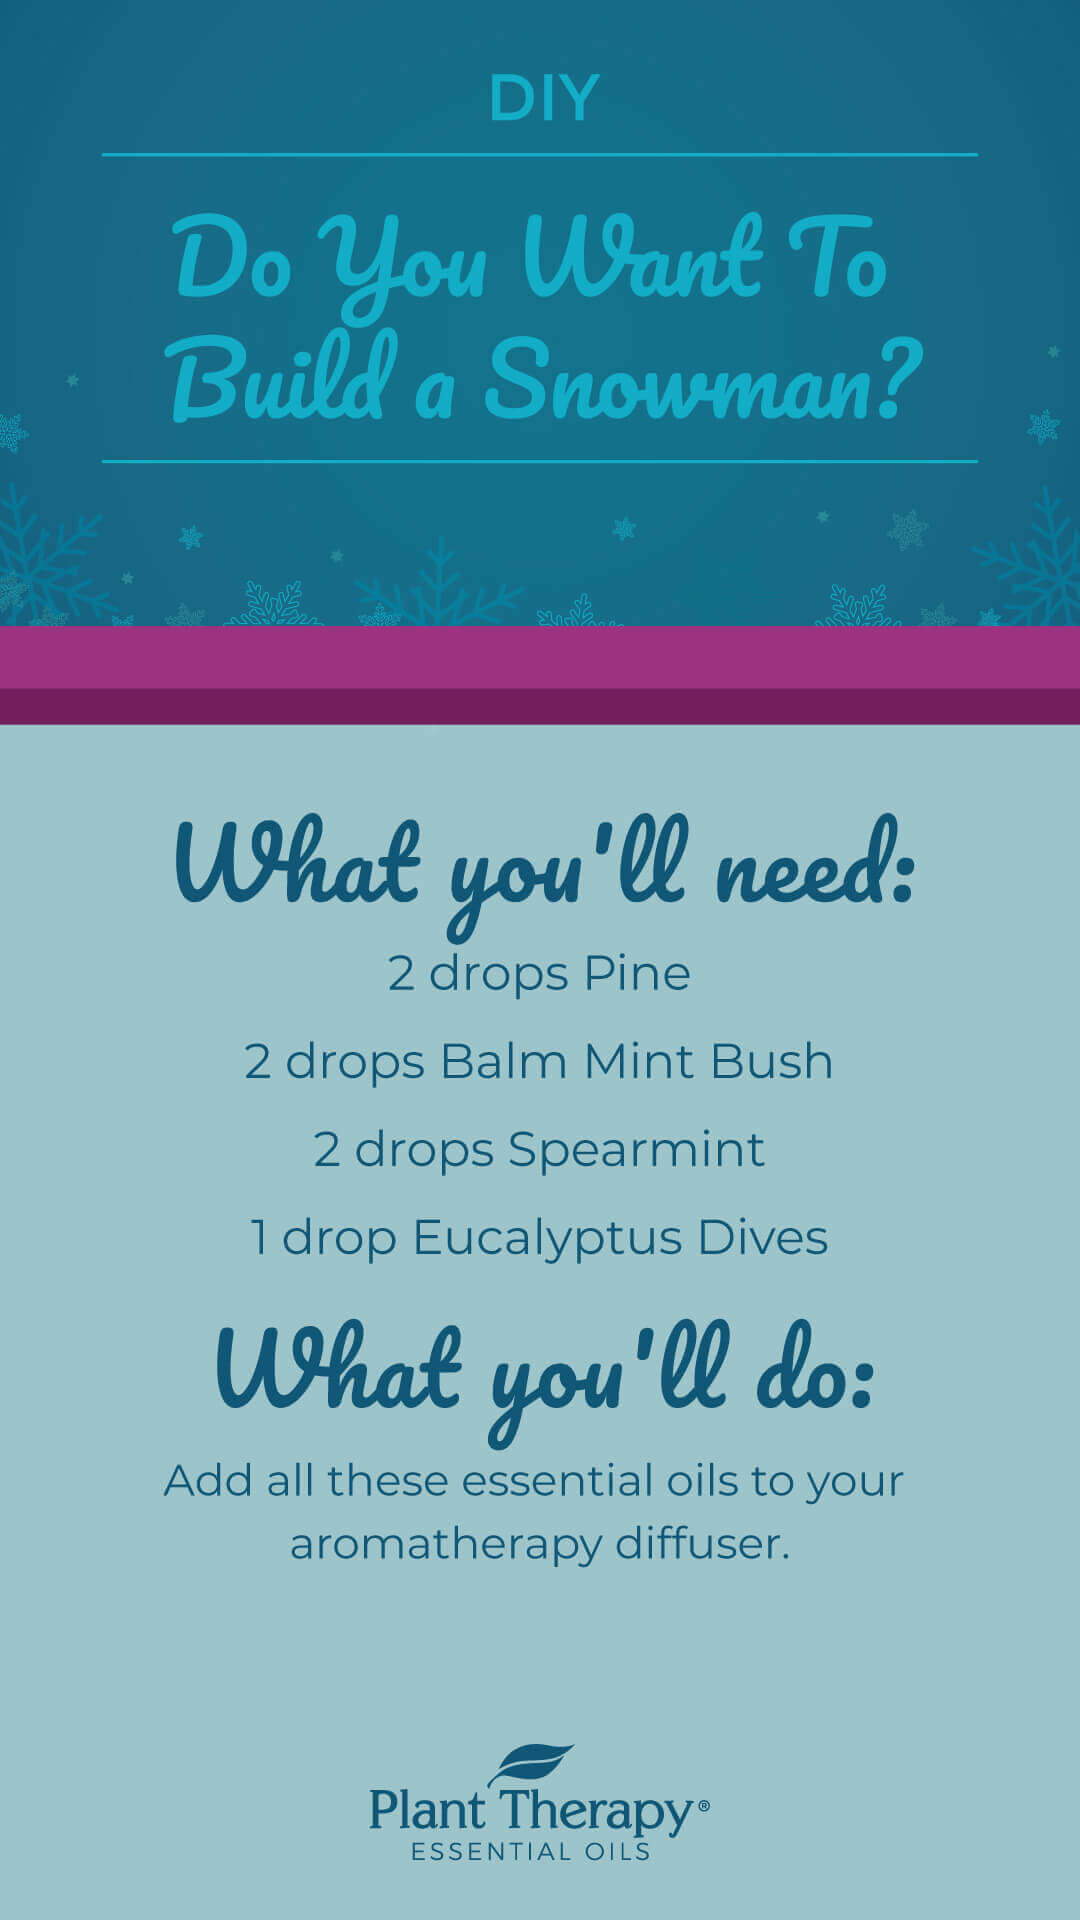 3 Frozen Inspired Blends to Set The Mood for Frozen 2